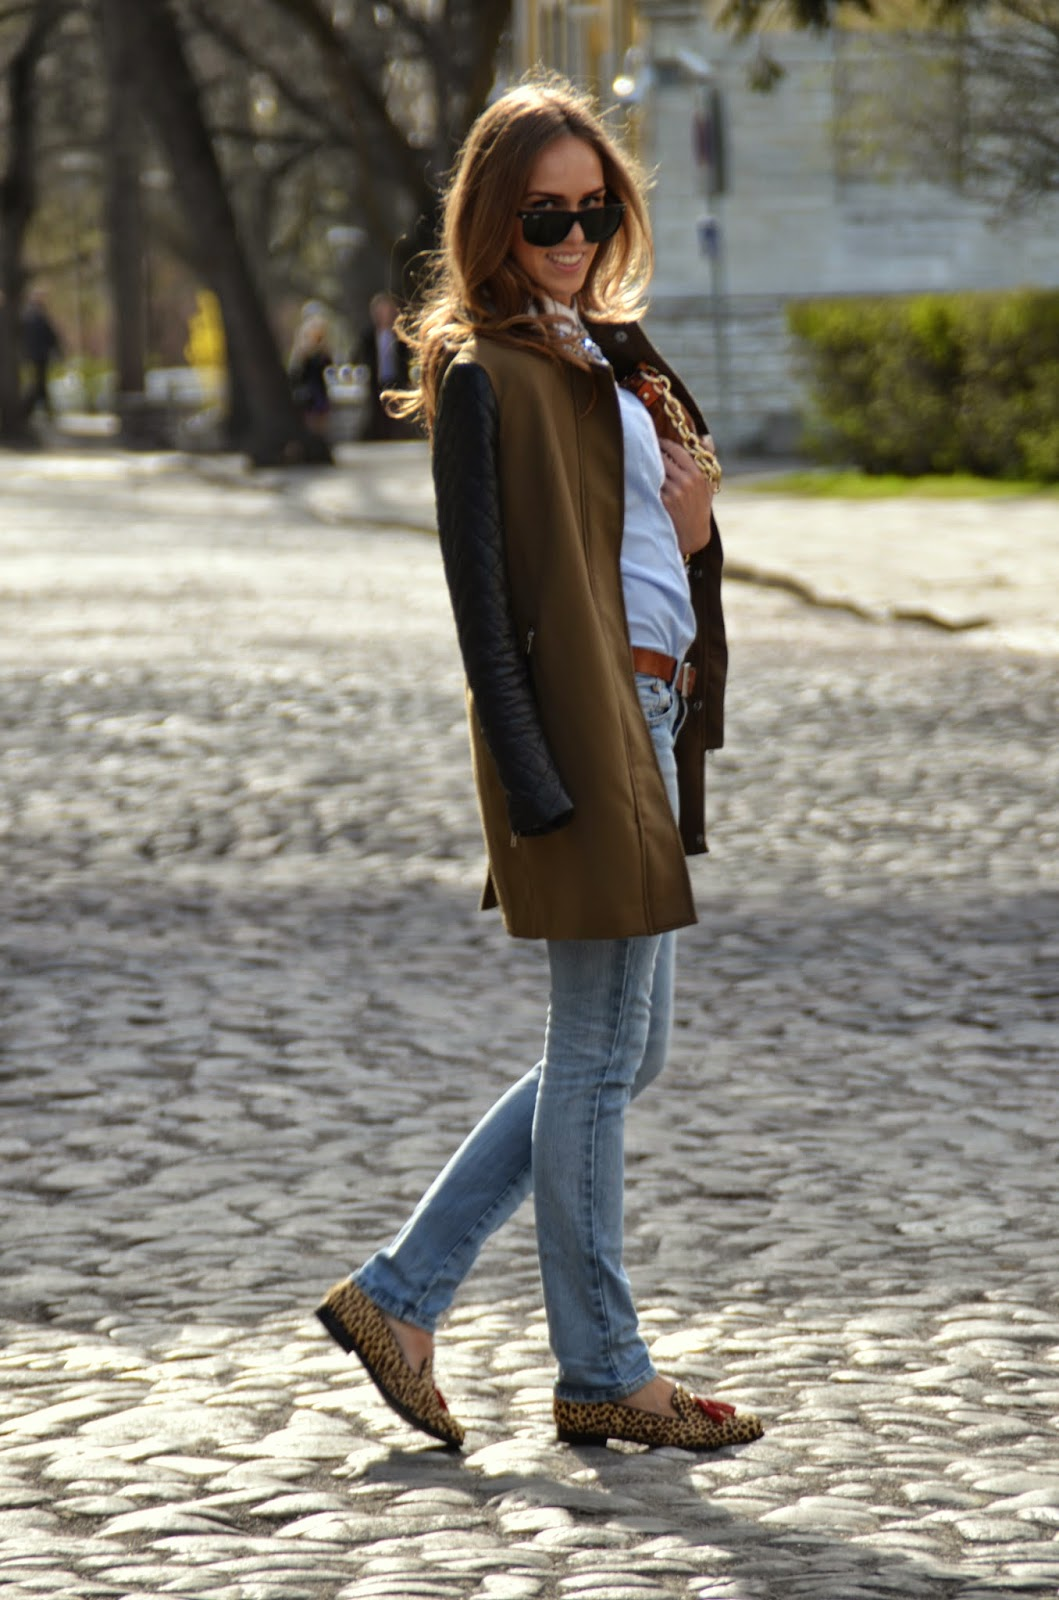 green-coat-jeans-leopard-shoes-spring-outfit